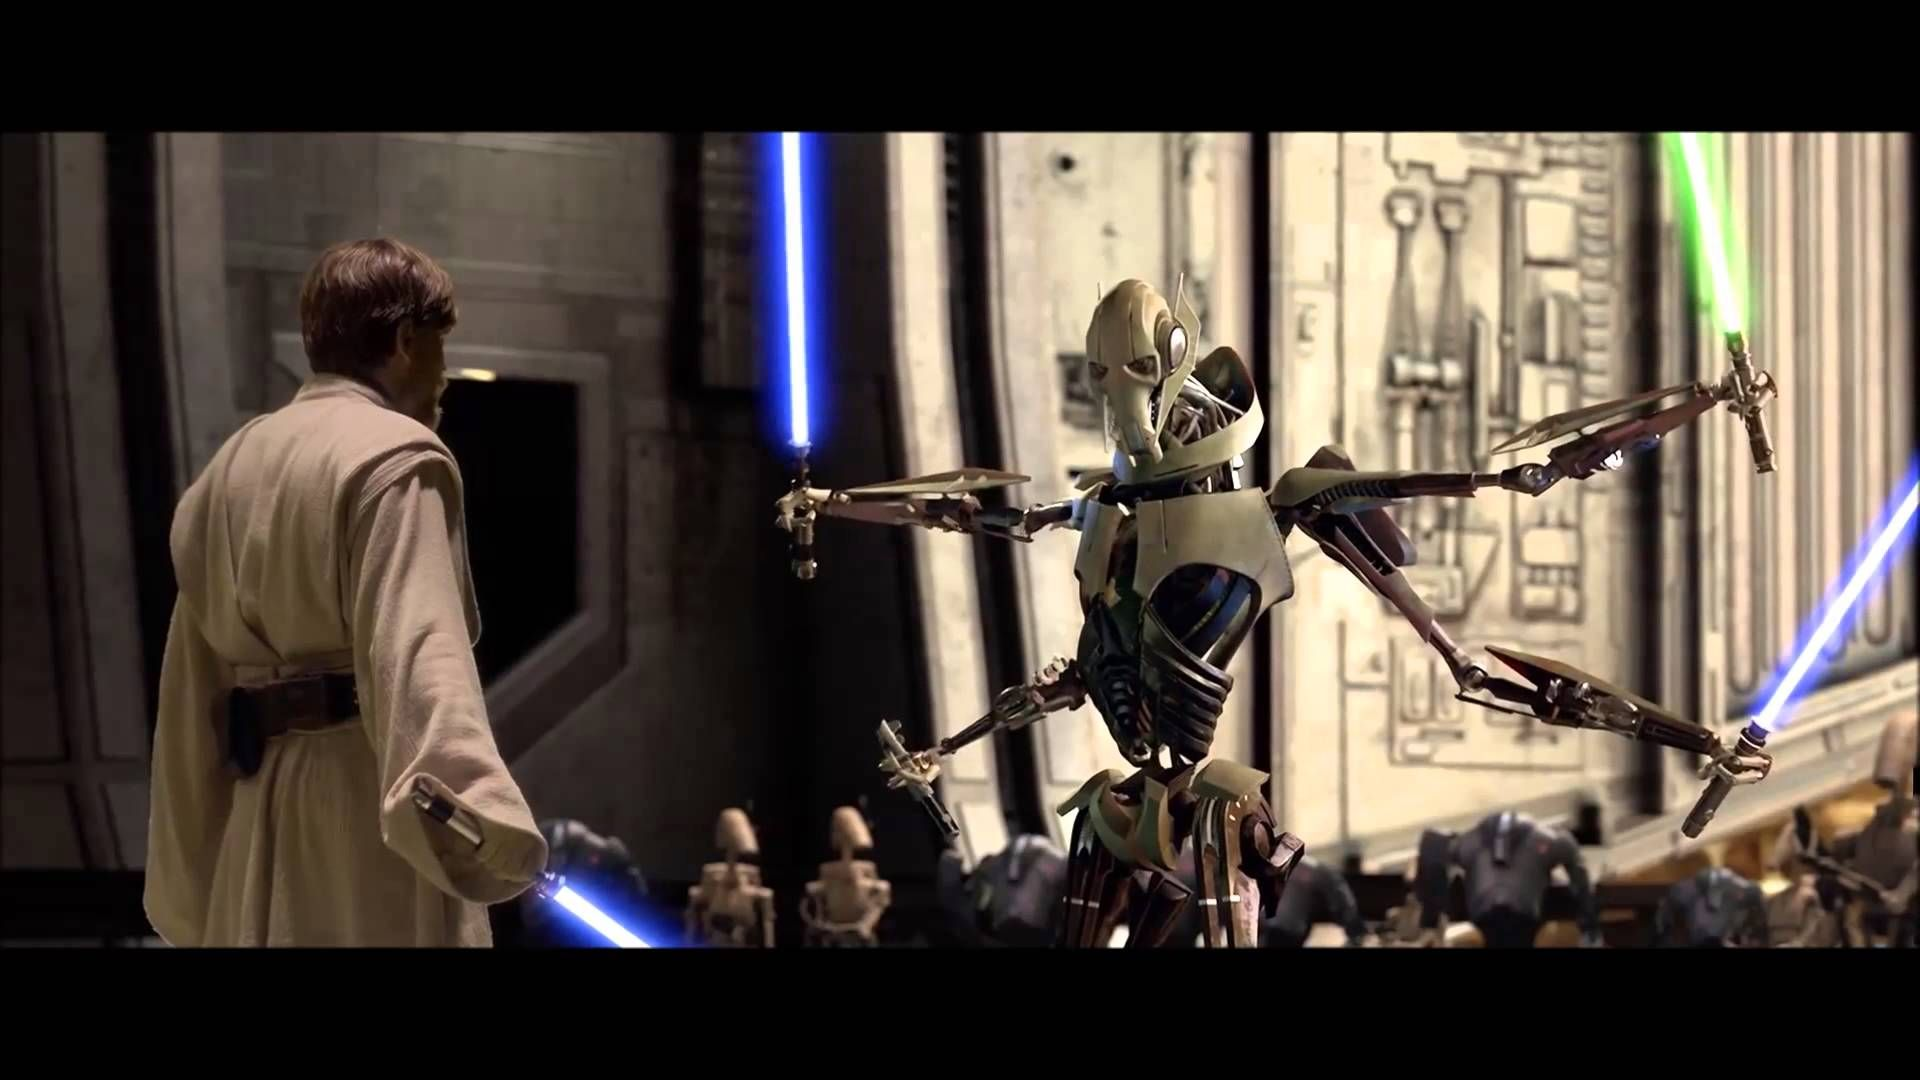 Revenge Of The Sith Obi Wan Kenobi Vs General Grievous Hd Best Star Wars Quotes Star Wars Battlefront Star Wars Movie